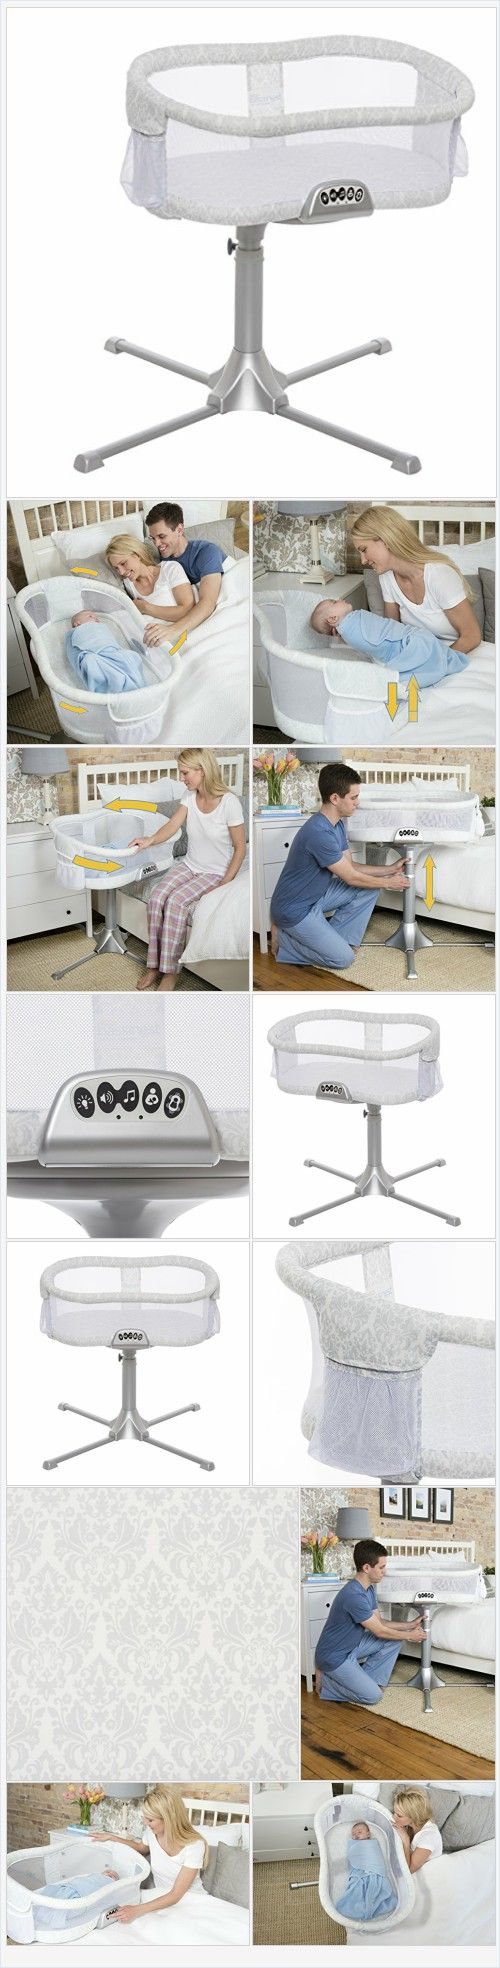 HALO Bassinest Swivel Sleeper Bassinet, Premiere Series - Every Thing Baby